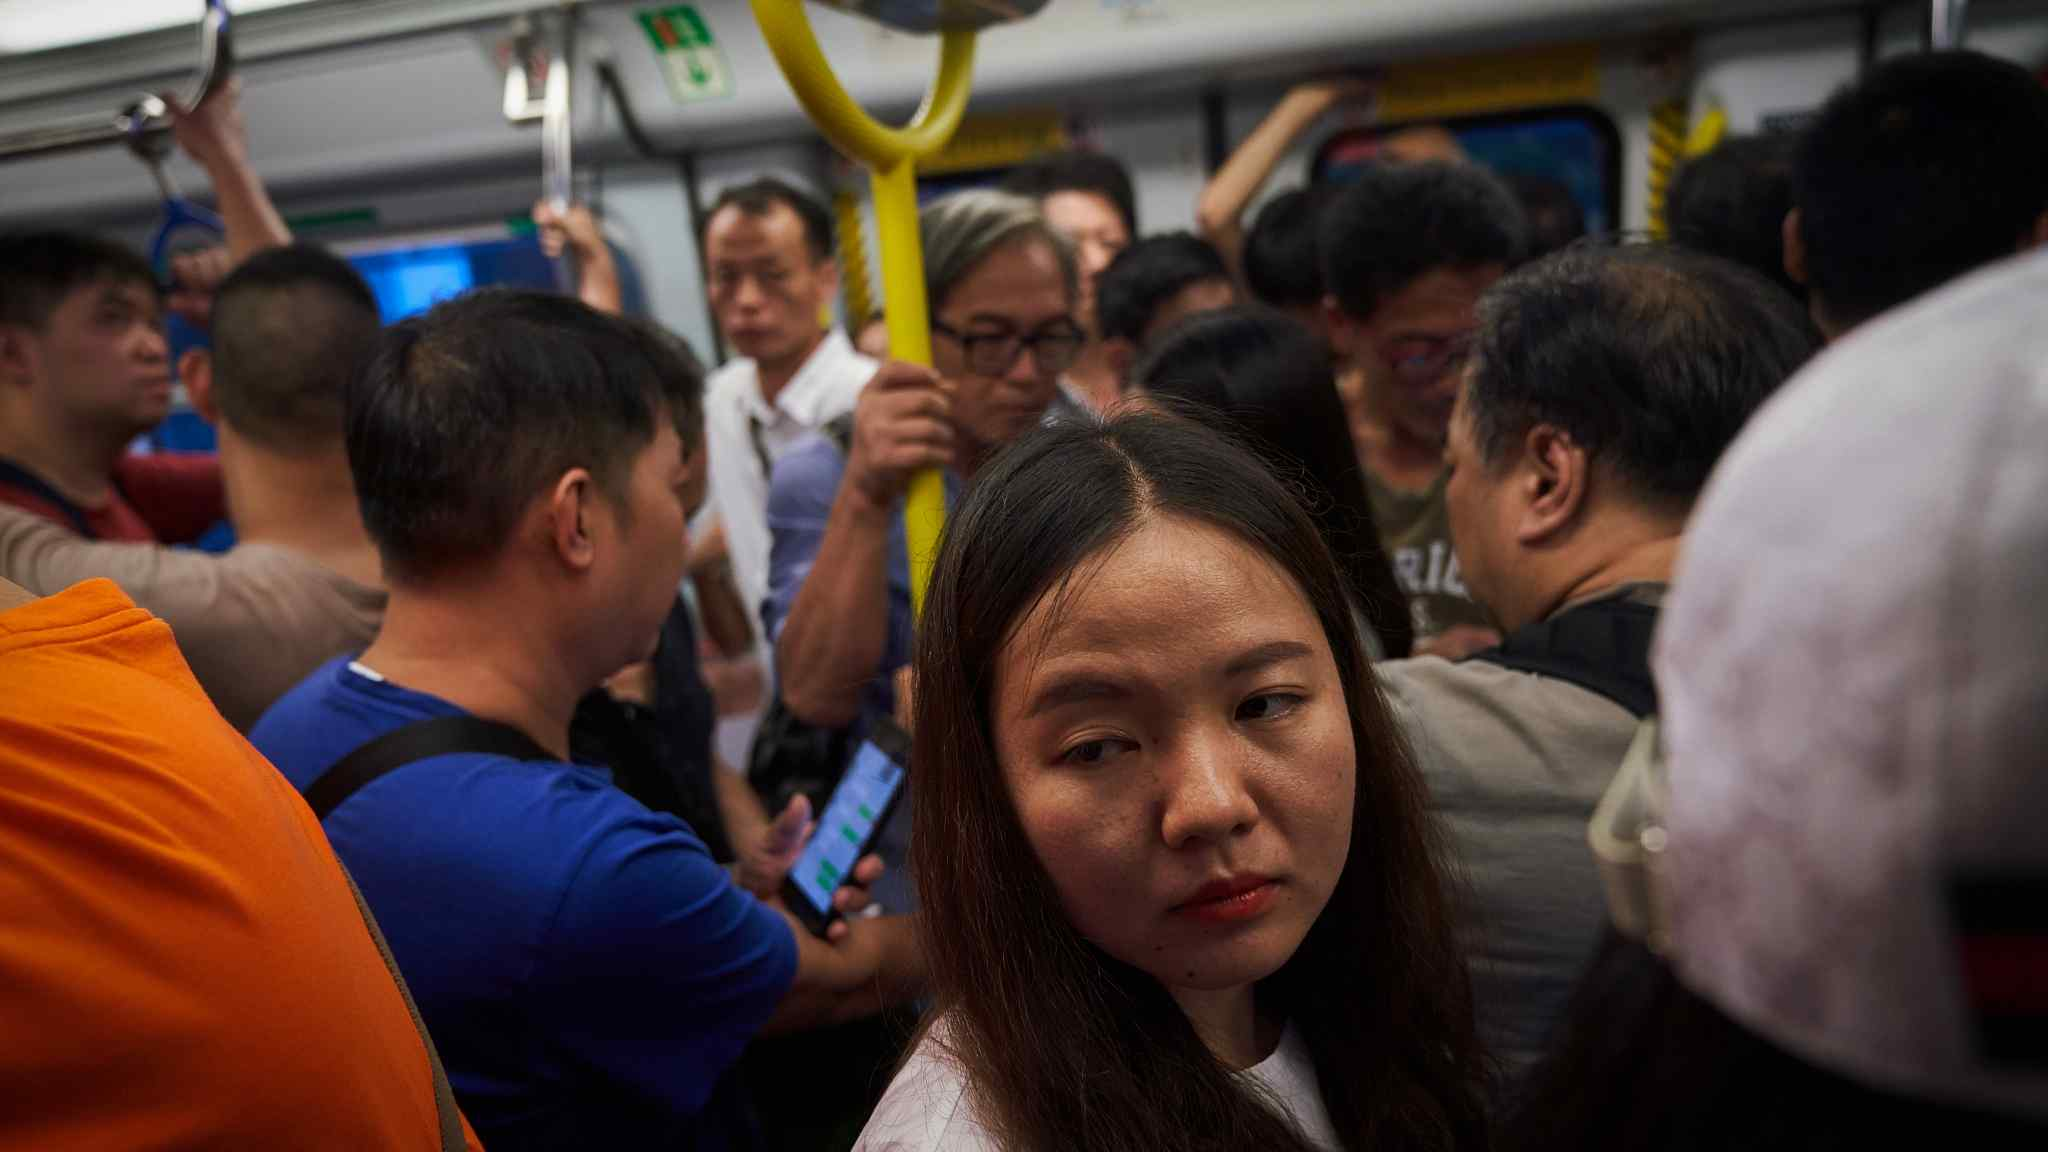 The average Beijing commute starts at 5 am